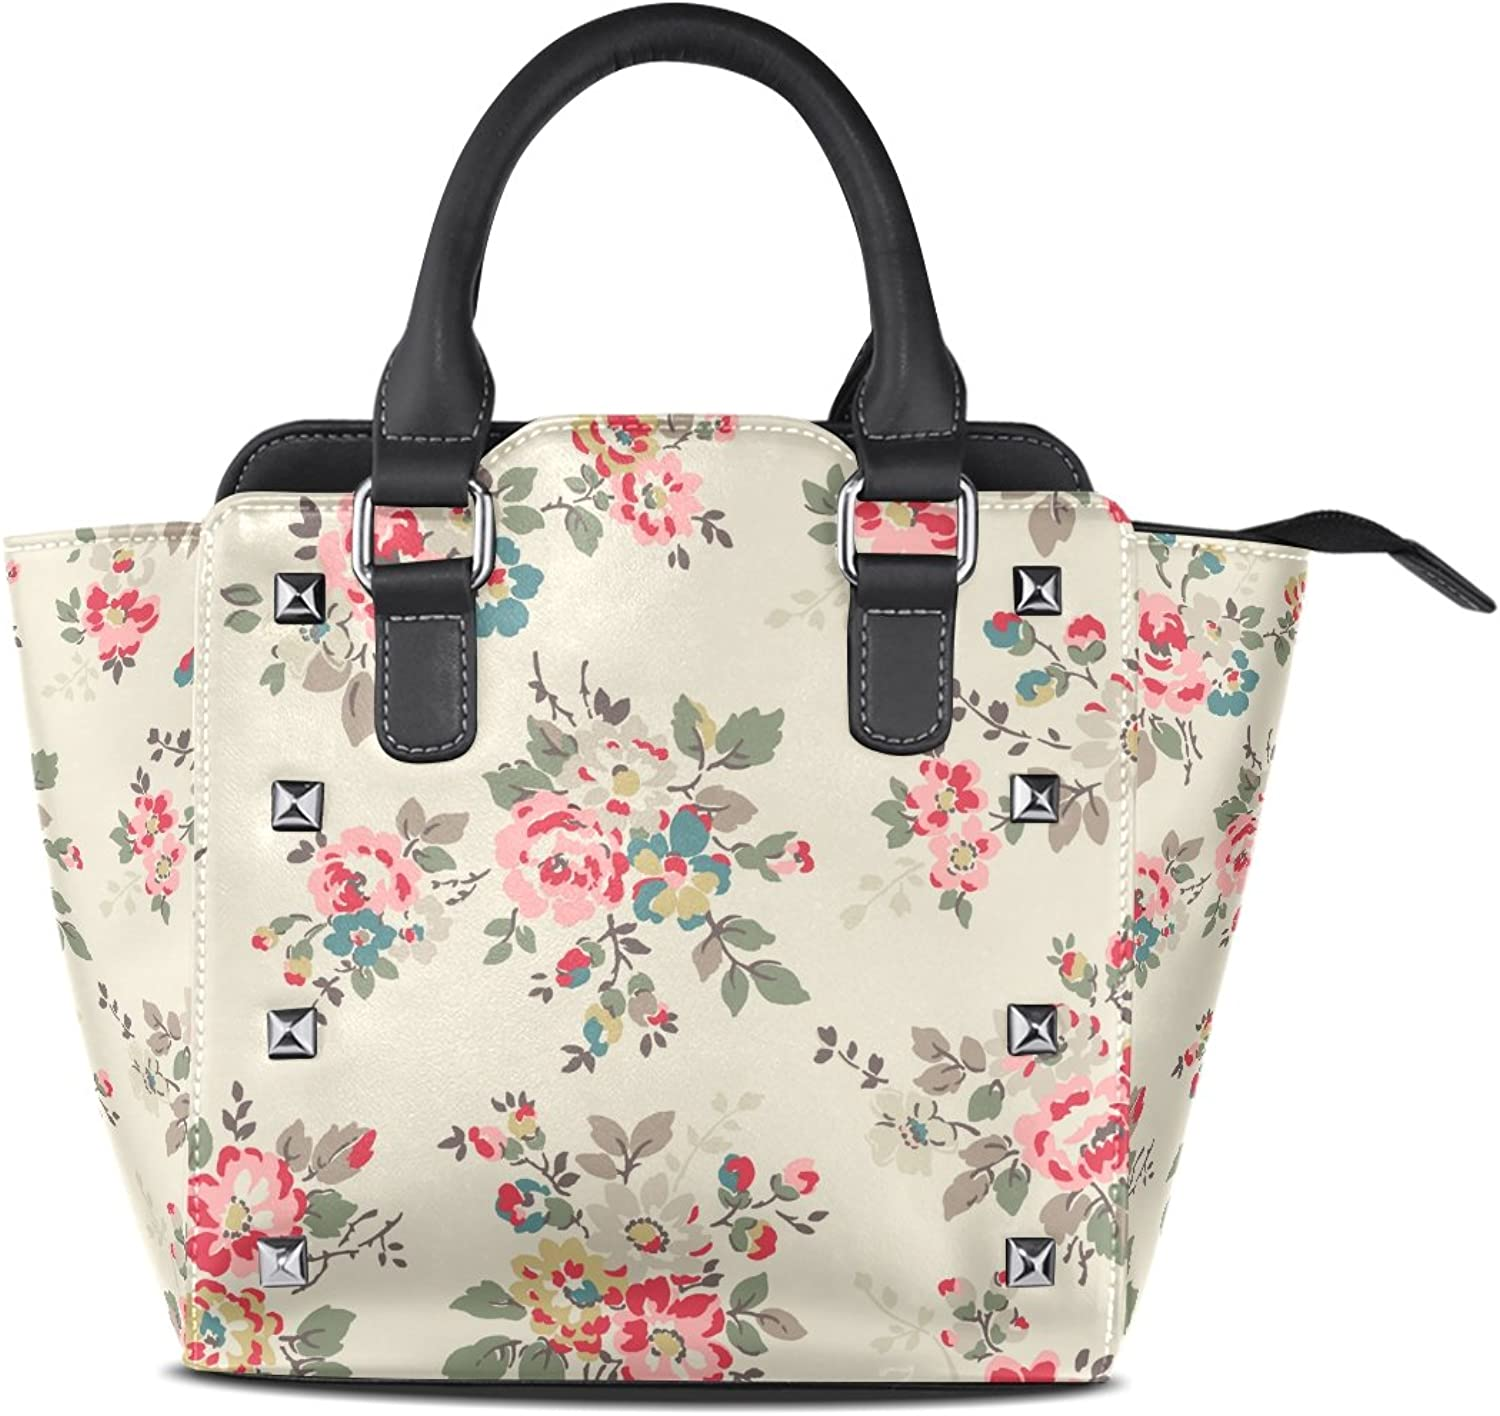 Sunlome Watercolor Floral Print Women's Leather Tote Shoulder Bags Handbags